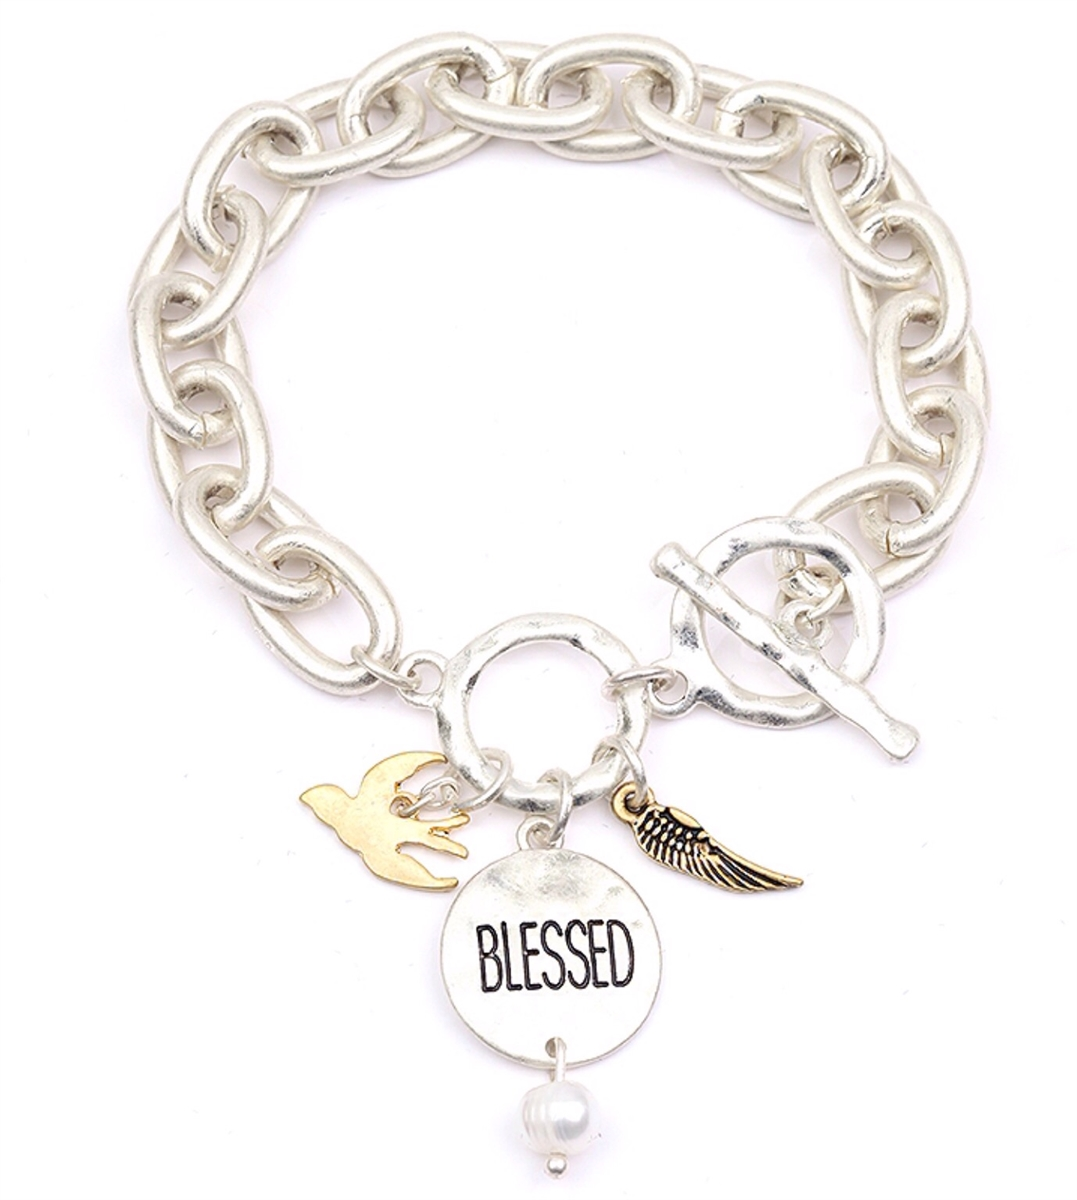 Silver Blessed Bracelet bracelet, cross bracelet, costume jewelry, toggle bracelet, l-8